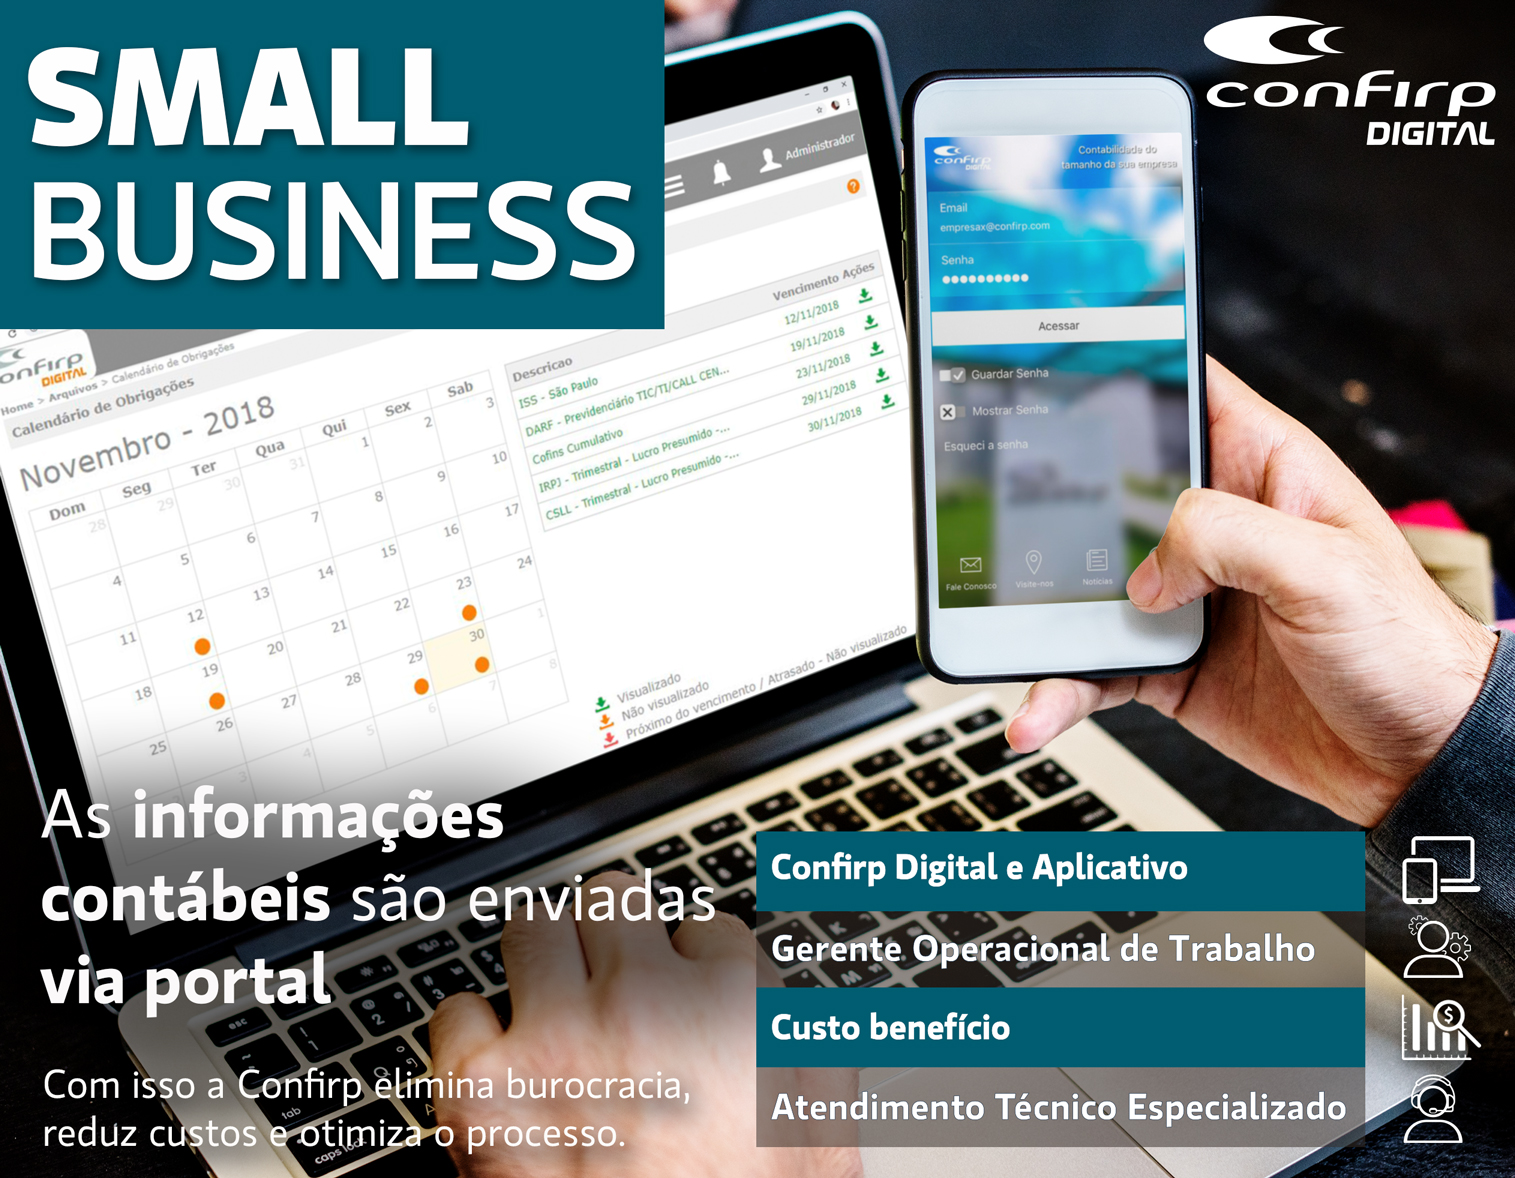 MKT—CONFIRP DIGITAL—SMALL BUSINESS 2